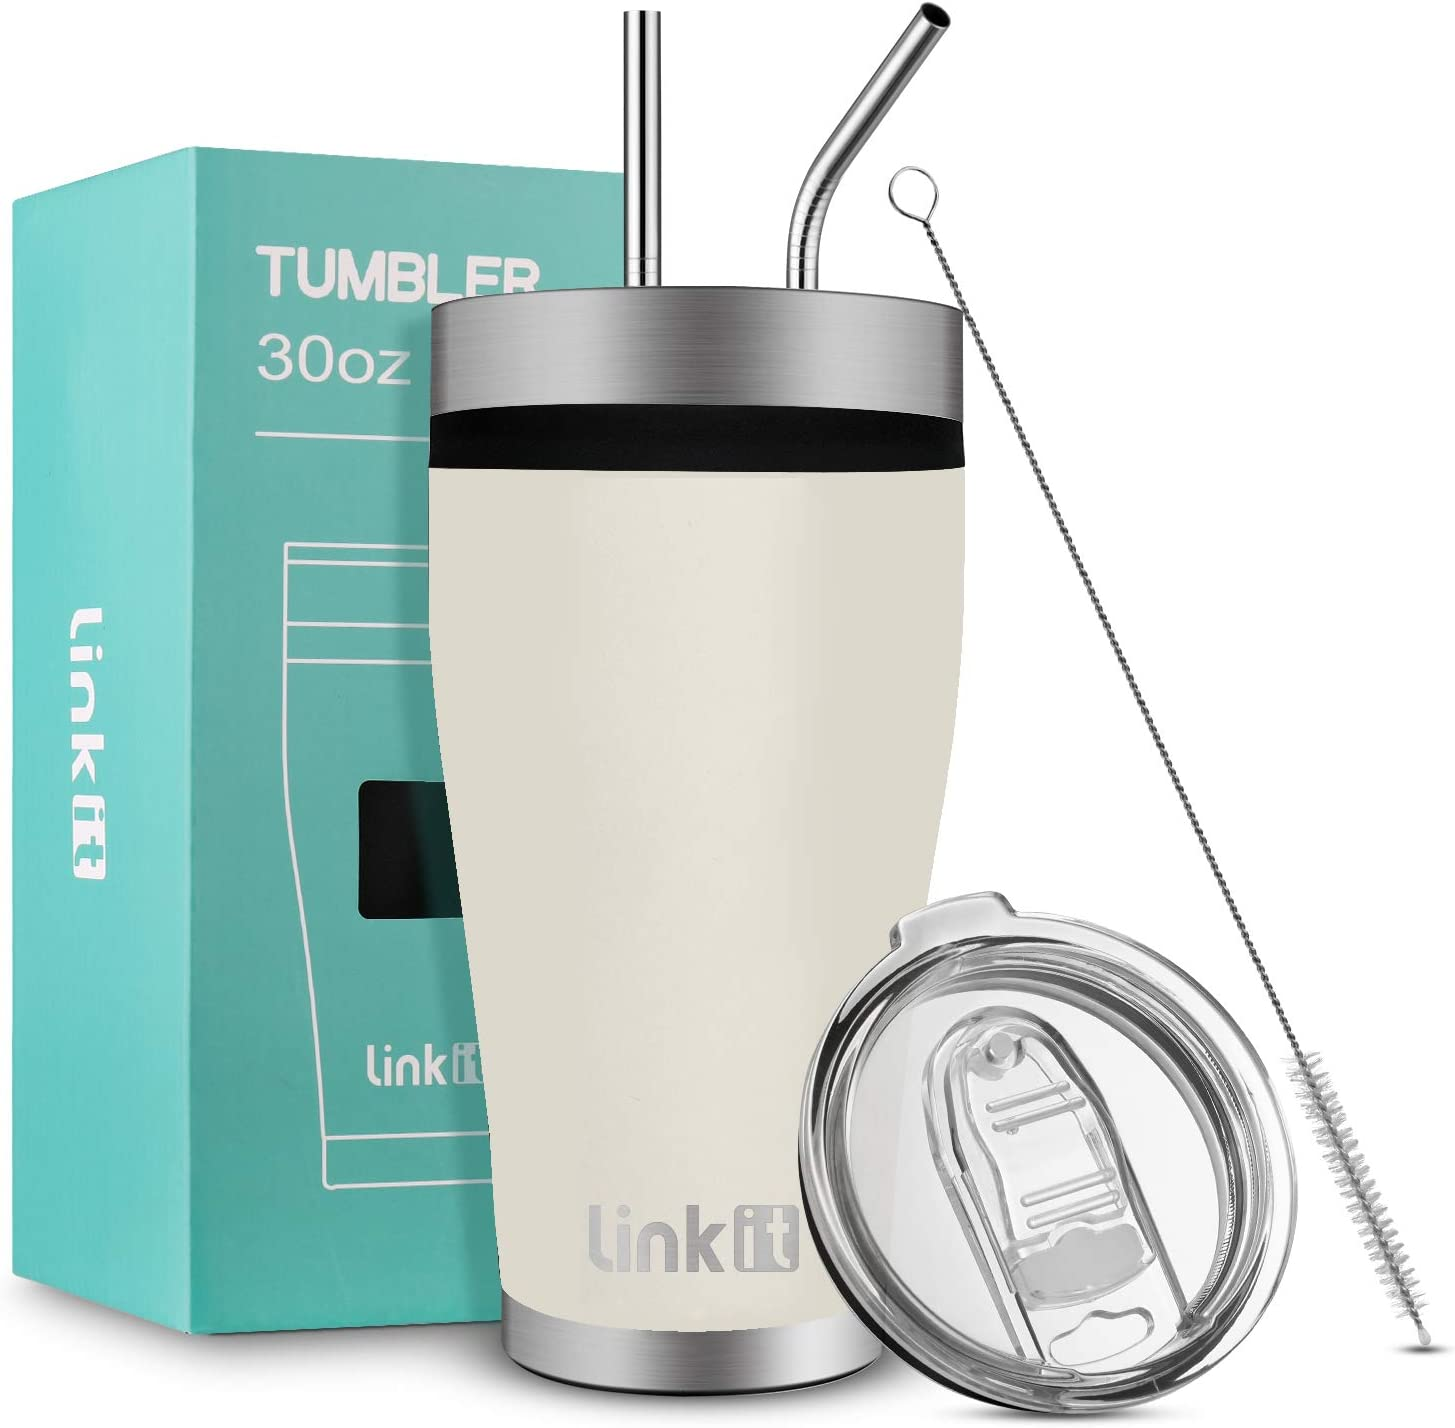 Linkit 30oz Tumbler with Slider Lid & Straws - Travel Mug Vacuum Insulated Coffee Cup - 18/8 Stainless Steel Water Bottle - Sand